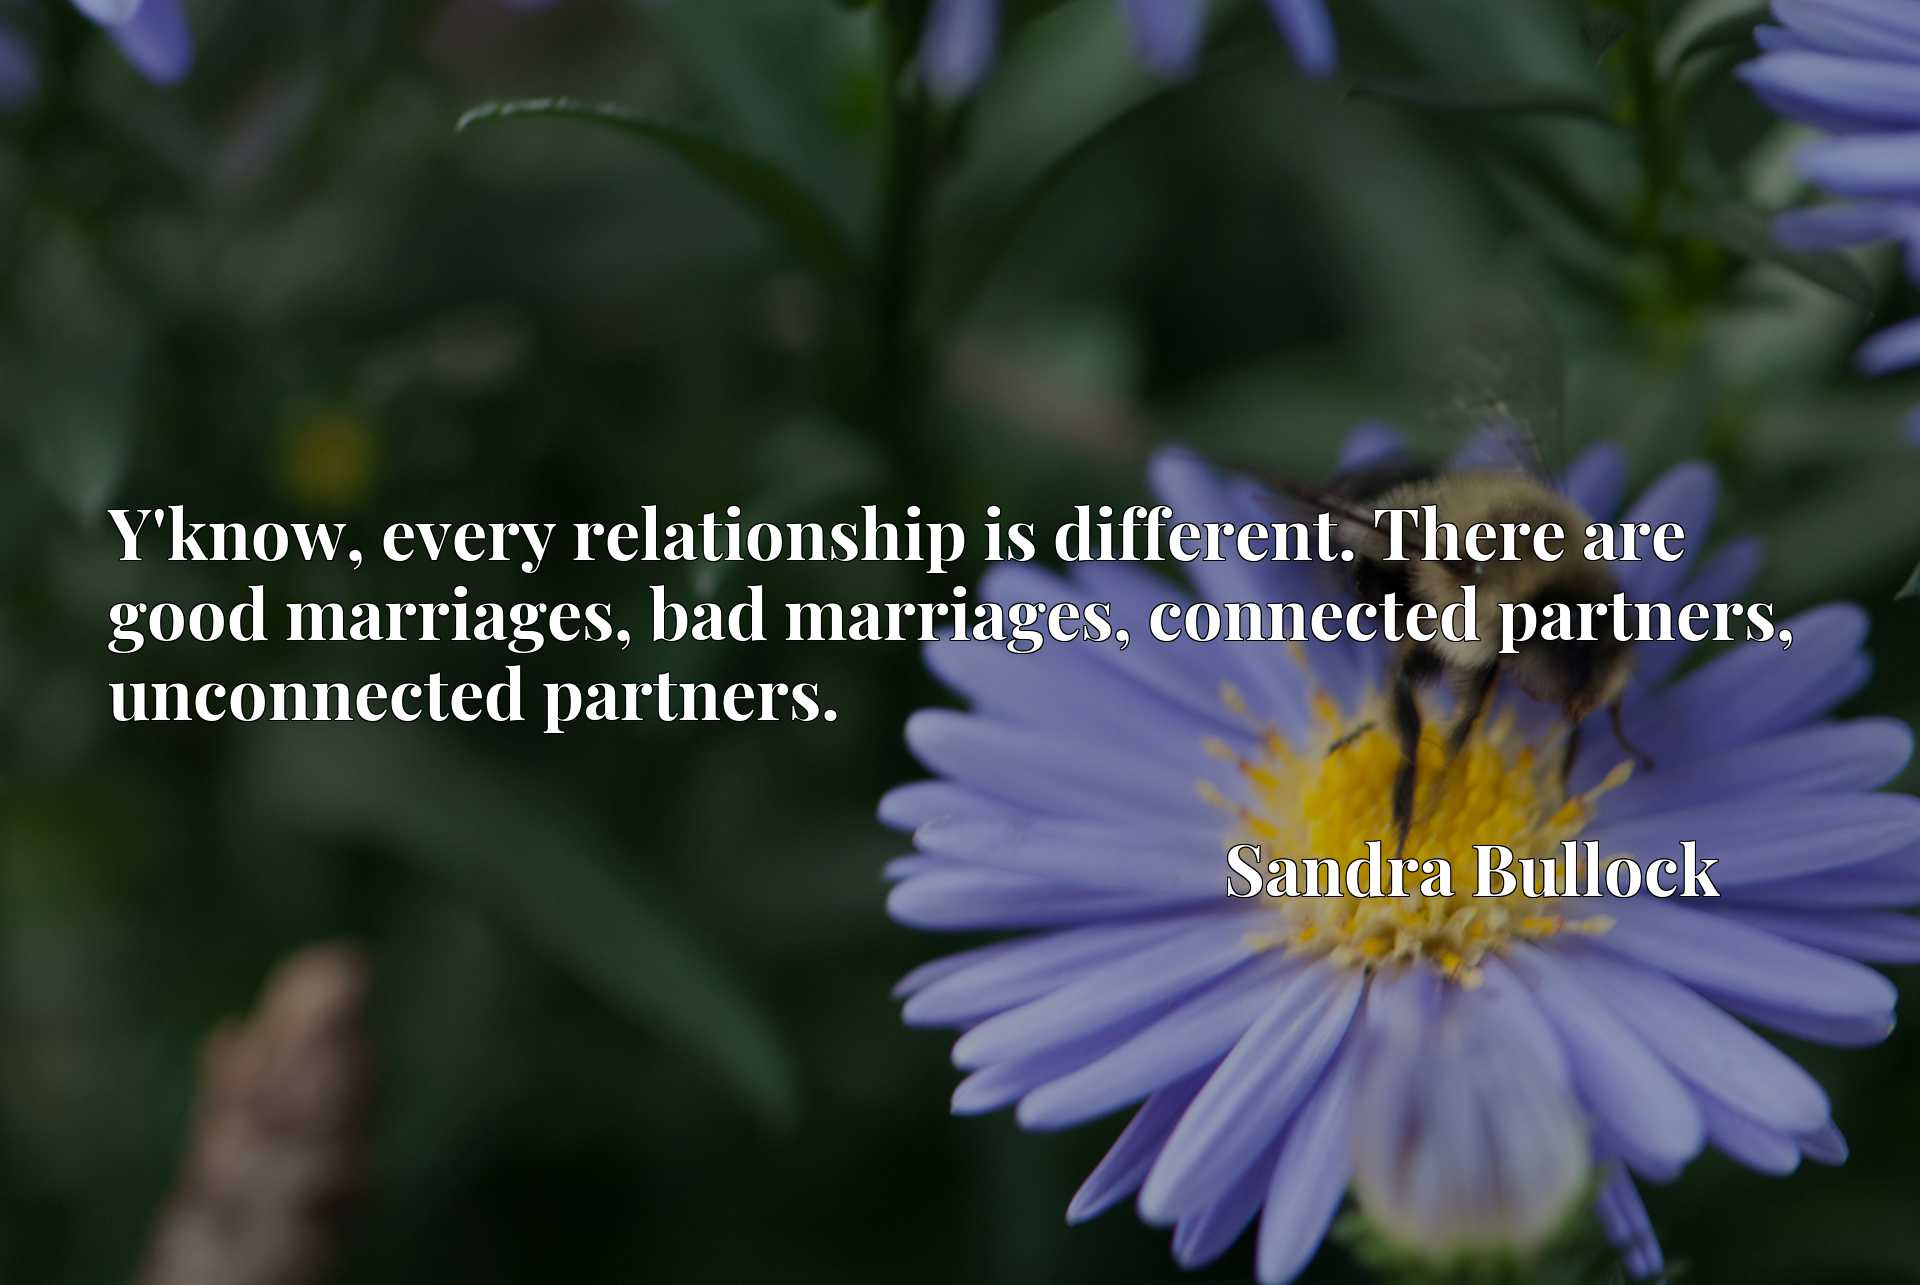 Y'know, every relationship is different. There are good marriages, bad marriages, connected partners, unconnected partners.